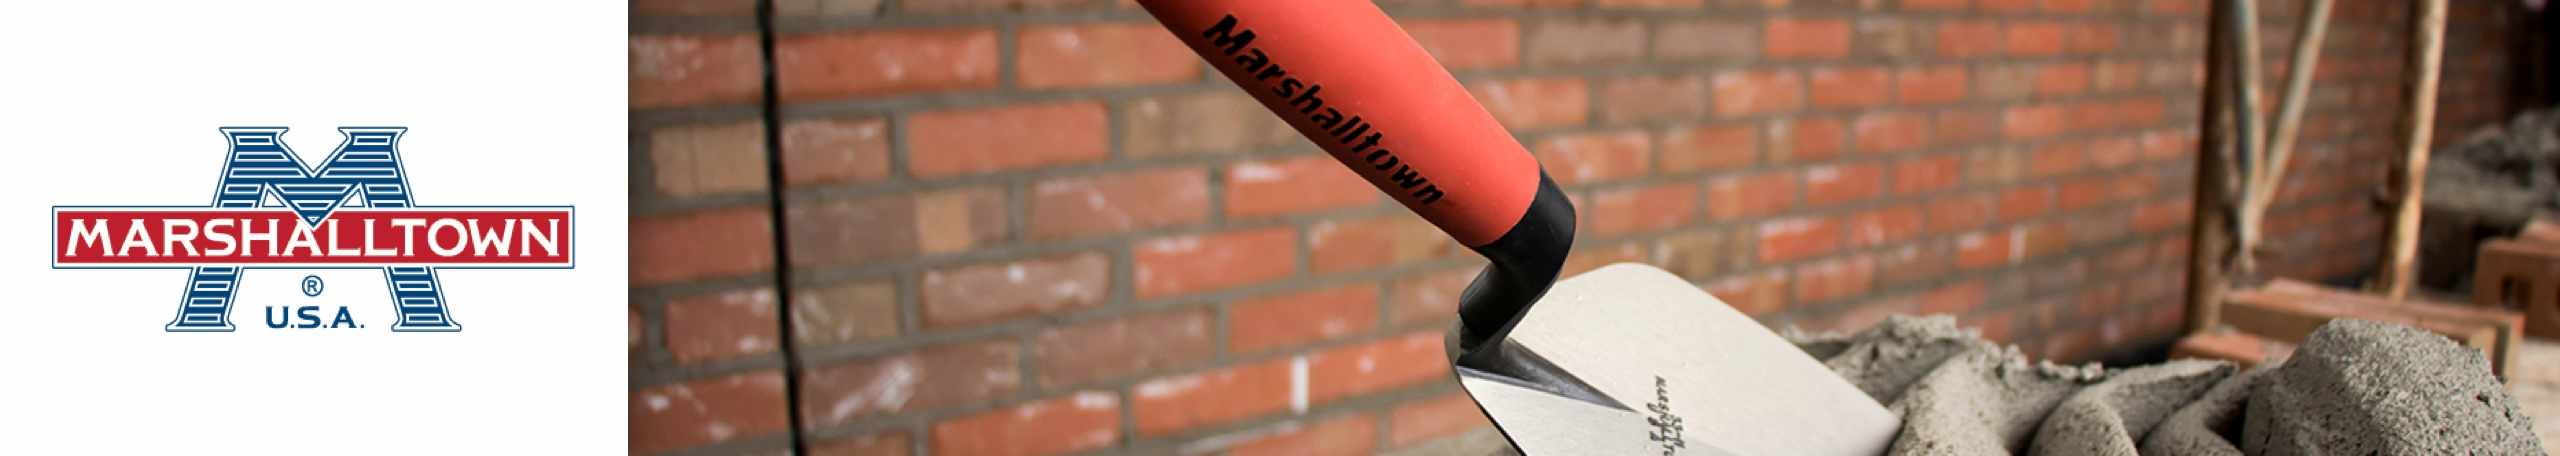 Marshalltown logo with Marshalltown cement tool